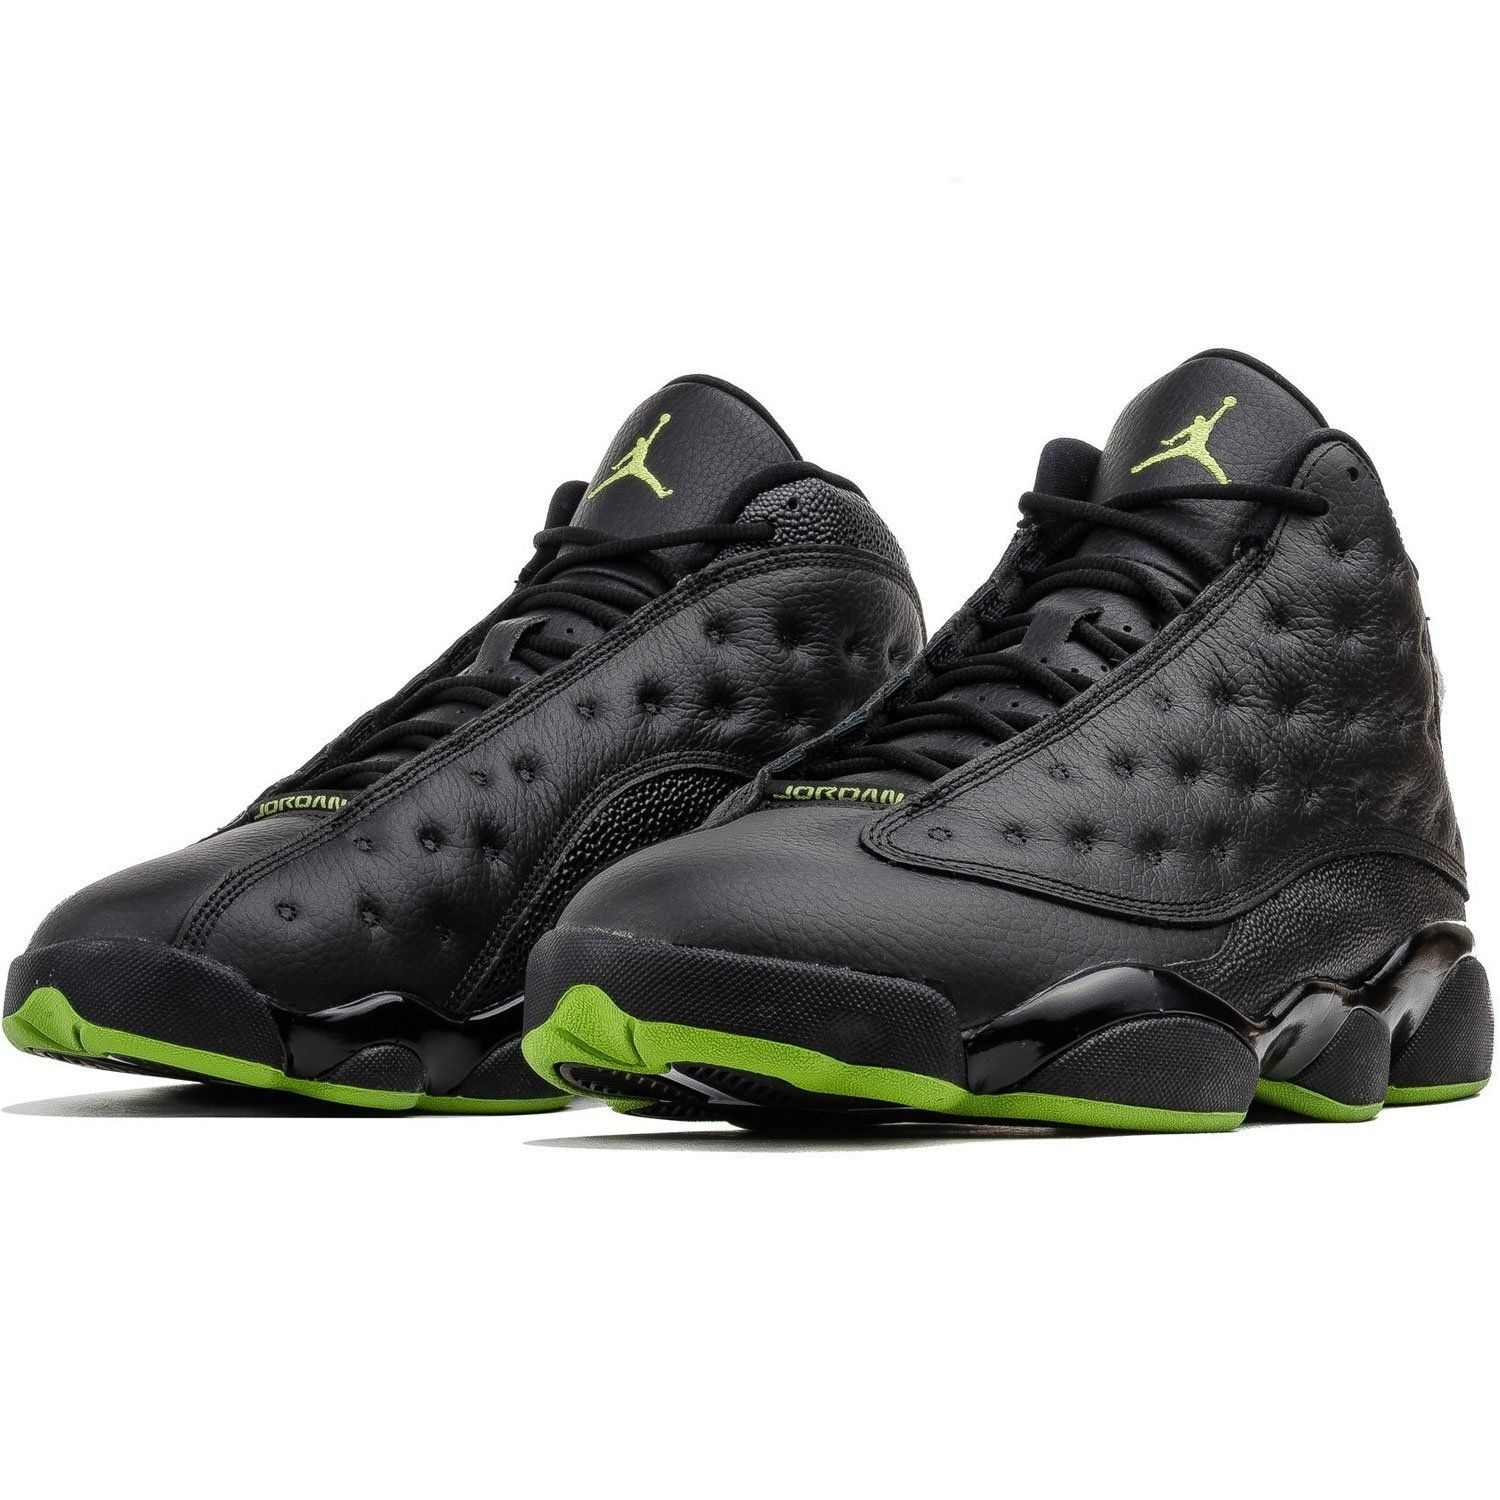 ddccaef38296b Amazon.com | Jordan Air 13 Retro Altitude Lifestyle Shoes Men - 11 ...